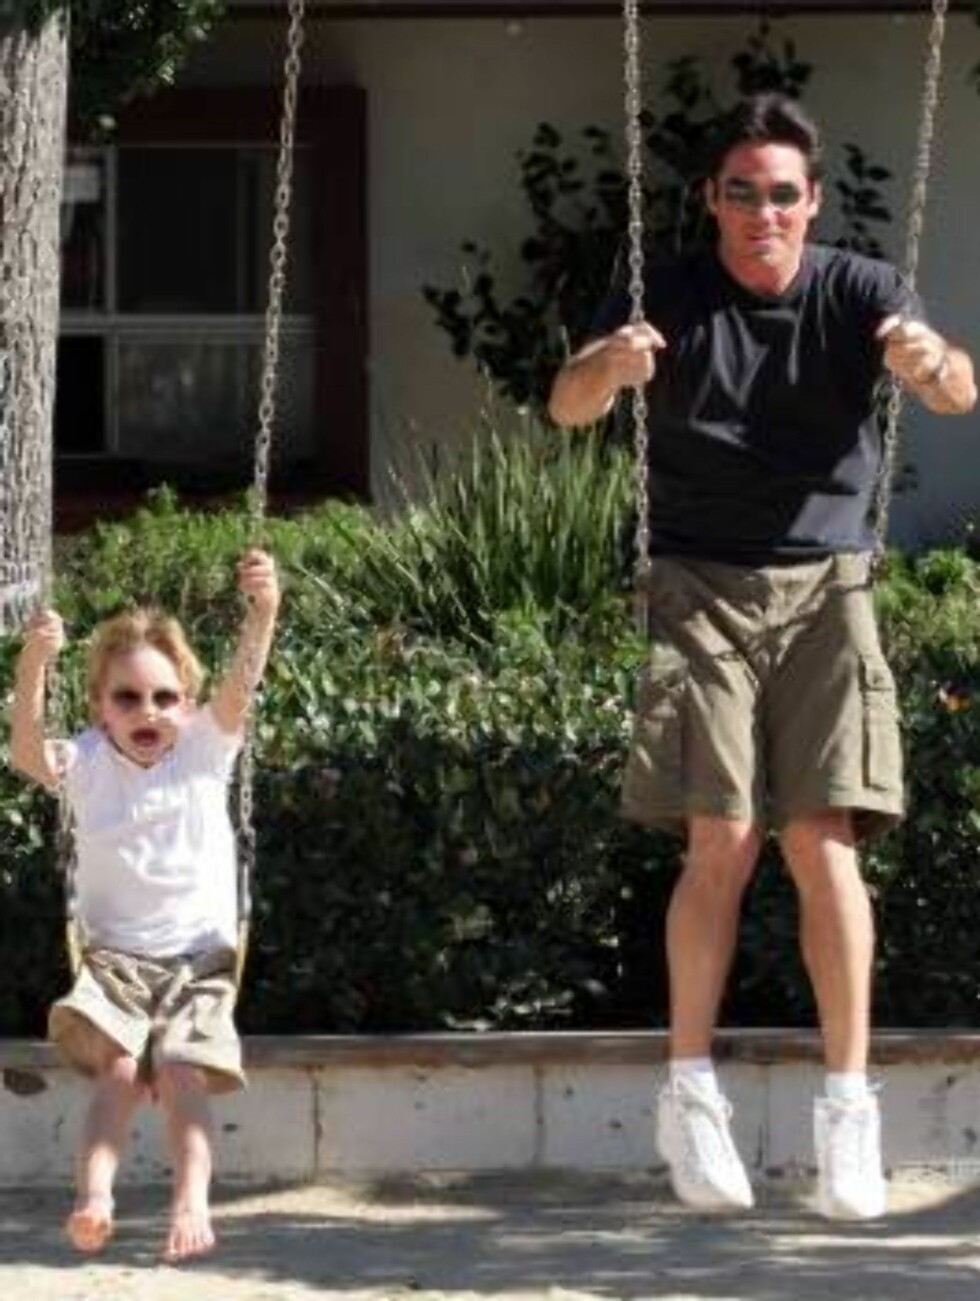 Superman Dean Cain and son Christopher on the swing at a park in Malibu enjoying sunny Thanksgiving holiday. November 20, 2005 X17agency EXCLUSIVE / ALL OVER PRESS Foto: All Over Press